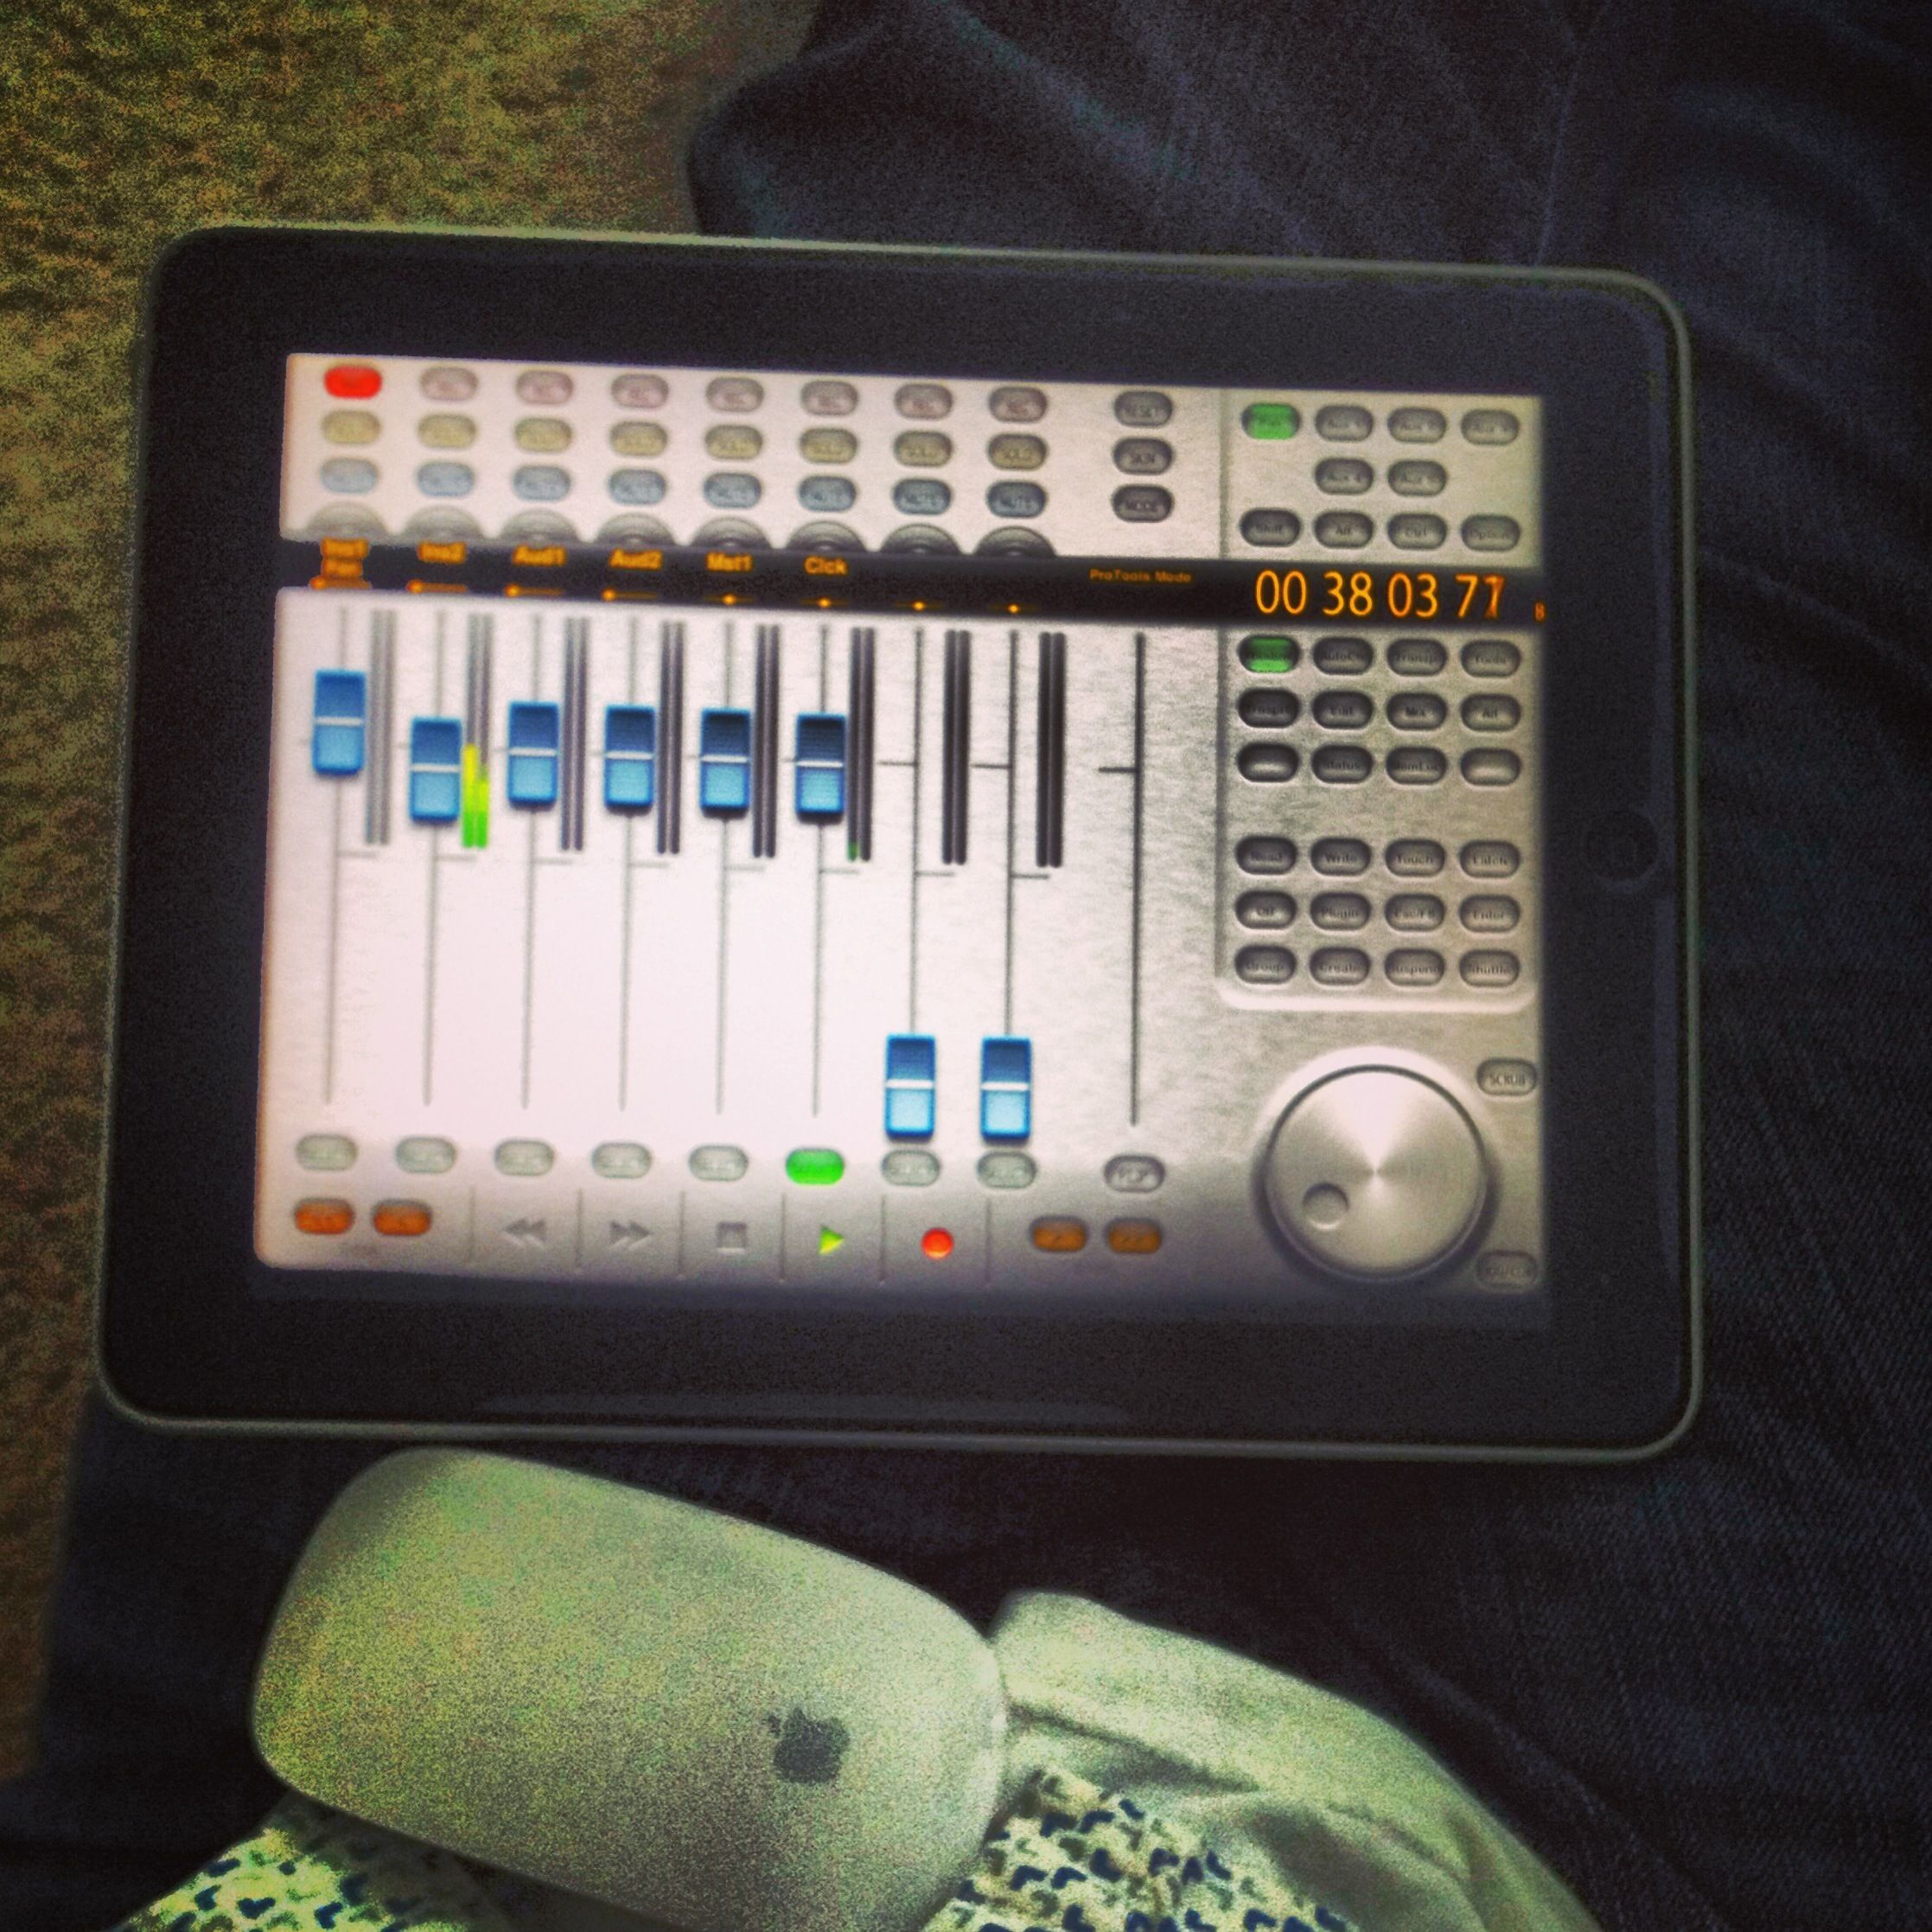 Ac7 core remote controls for pro tools or logic etcetera